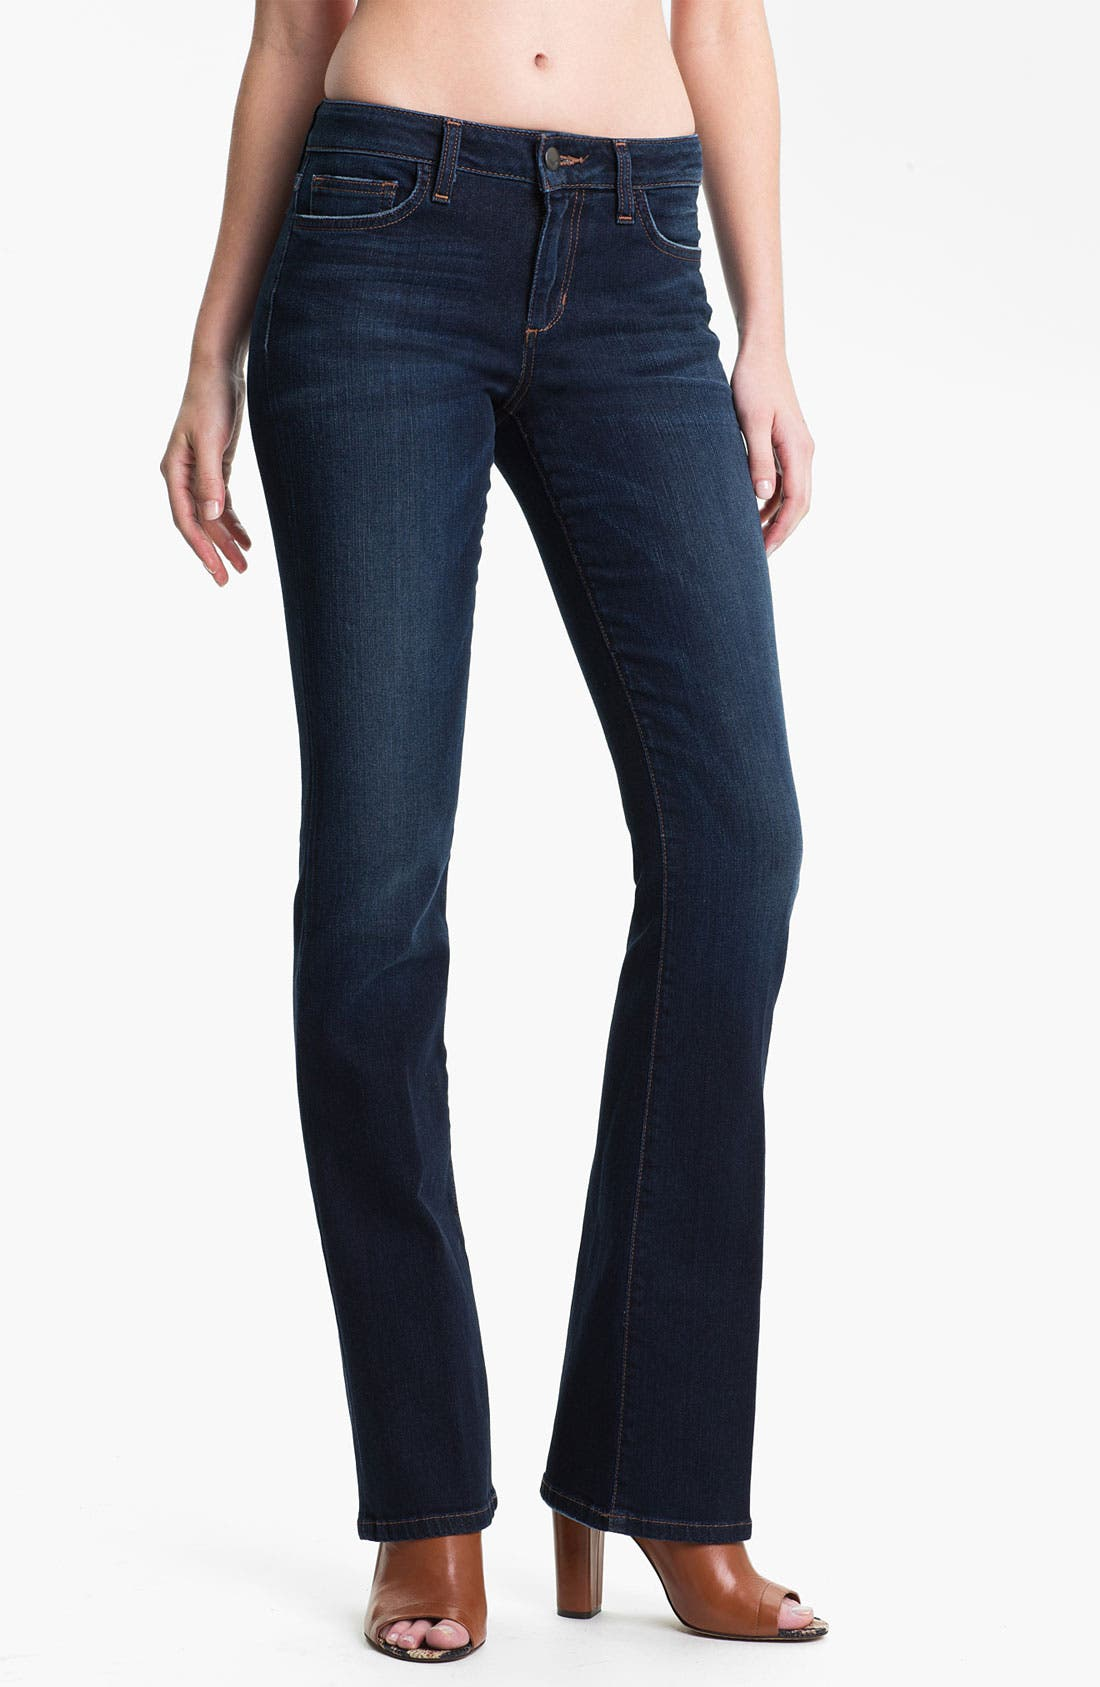 Main Image - Joe's Jeans 'The Honey' Curvy Bootcut Jeans (Marty)